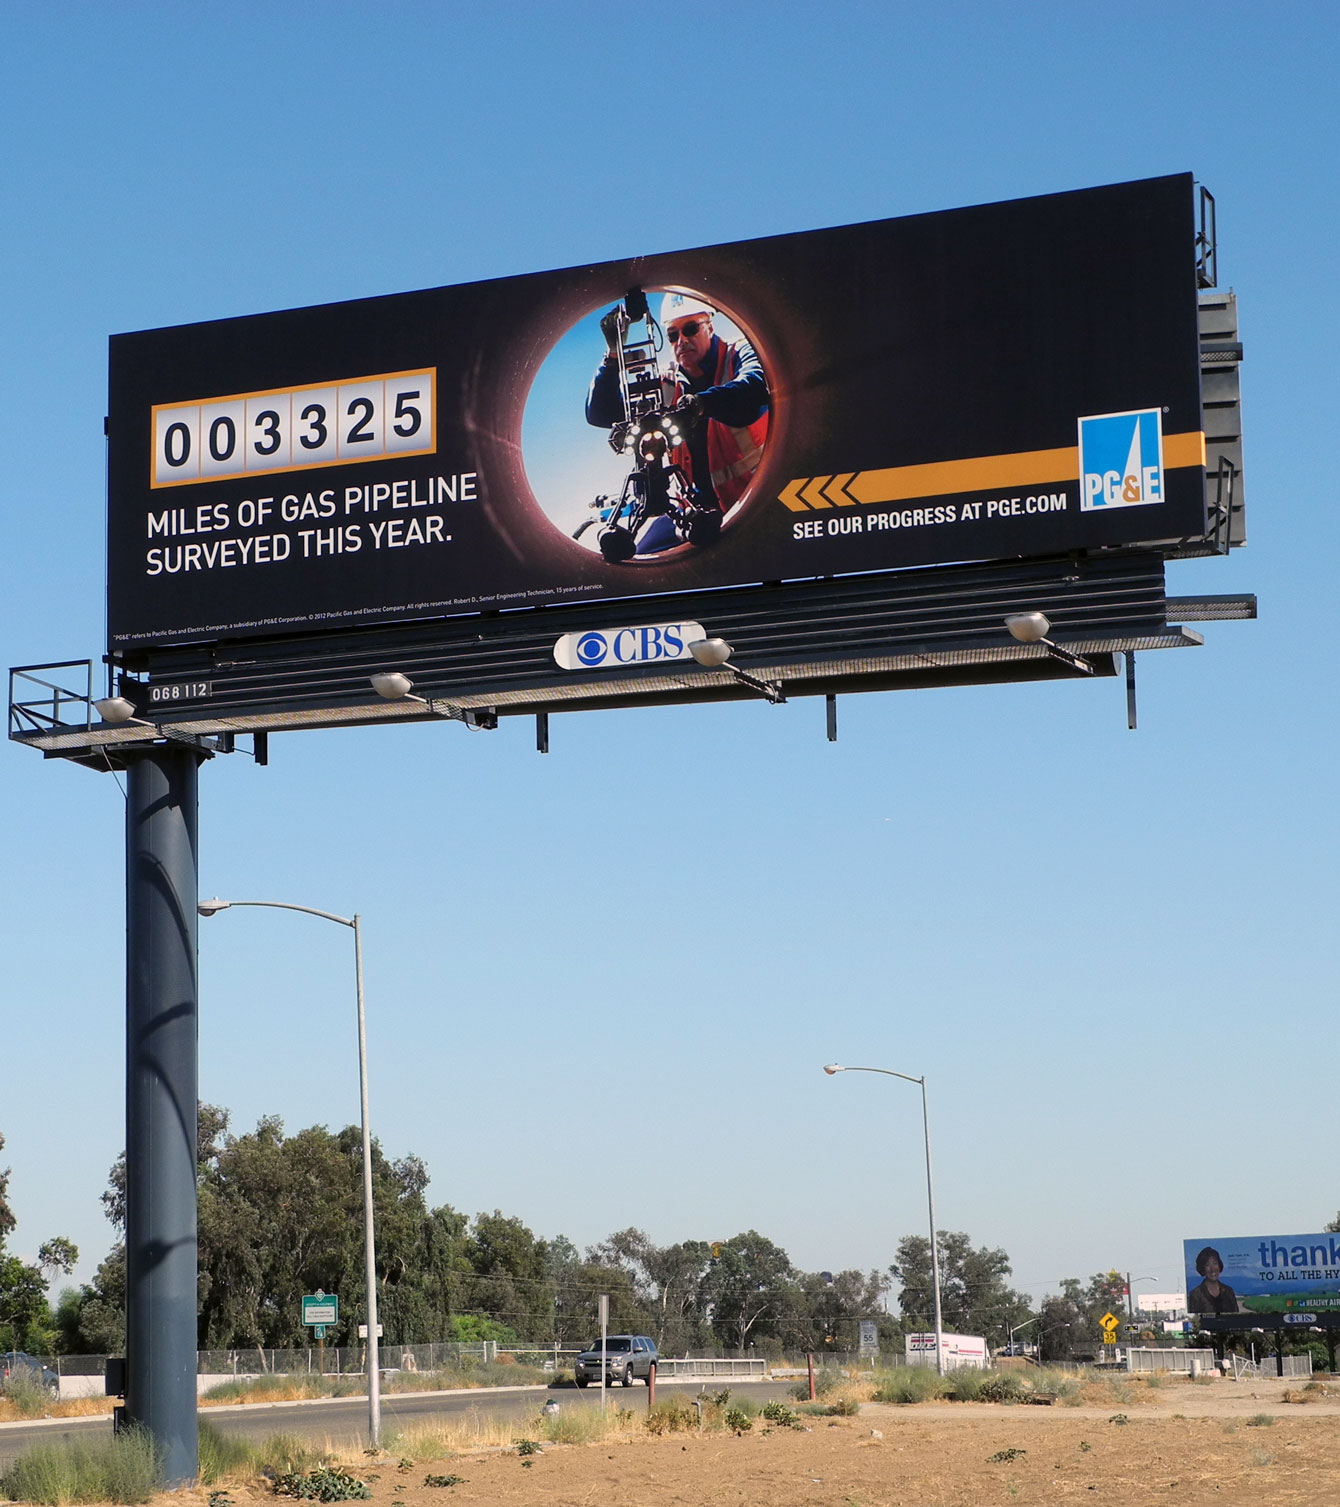 PG&E Billboard Ad Features Inuktun Versatrax 300™ | San Francisco Bay, CA